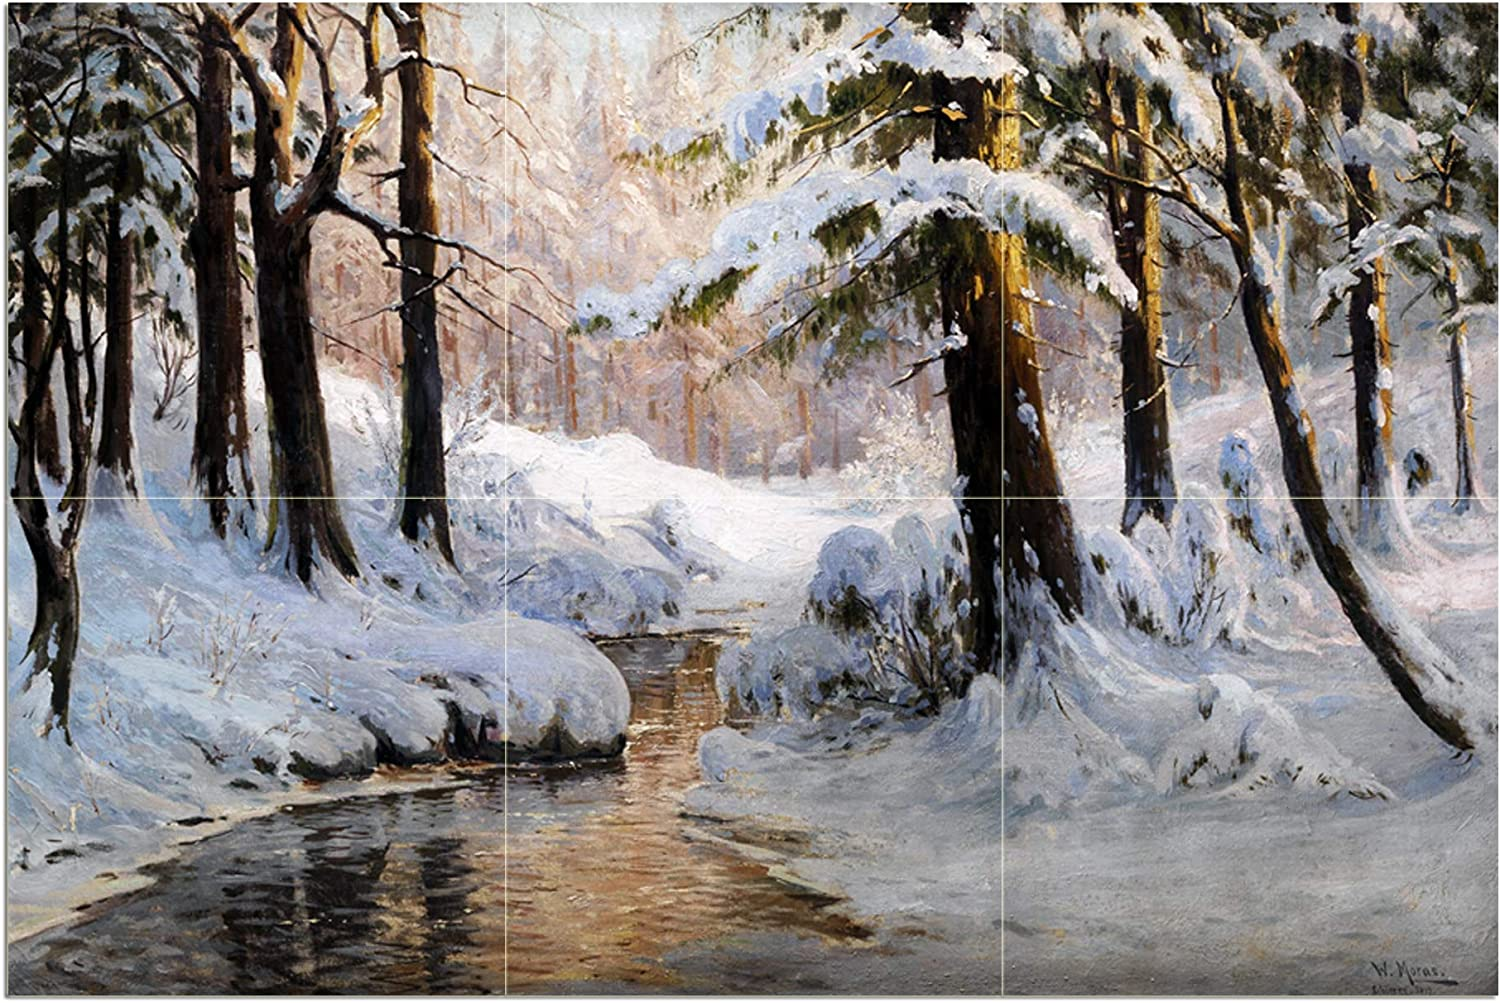 Tile Mural Landscape River New arrival Forest Pine Special price for a limited time Ki by Moras Winter Walter